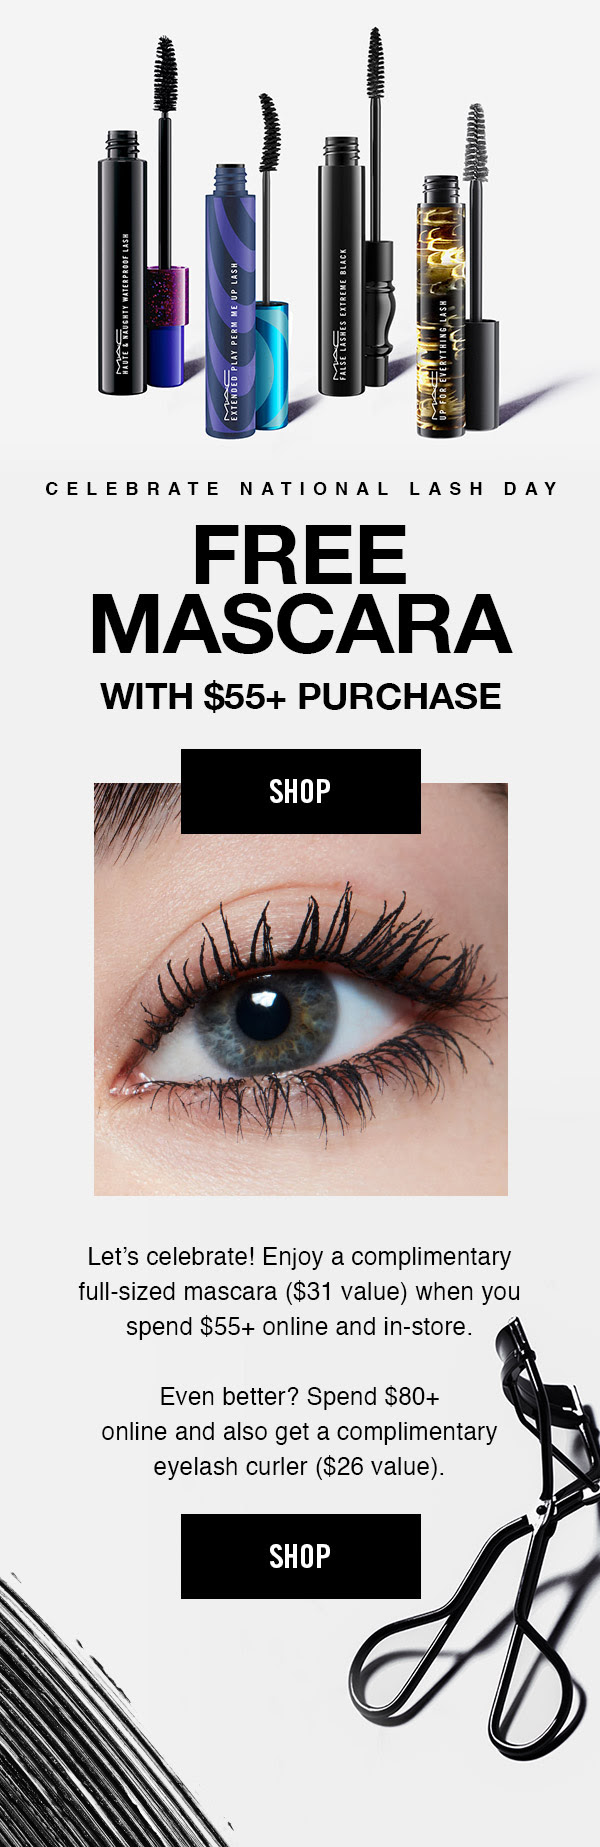 MAC Cosmetics Canada Free Full-size Mascara Eyelash Curler with Purchase 2020 National Lash Day Canadian Deals Free Gifts - Glossense